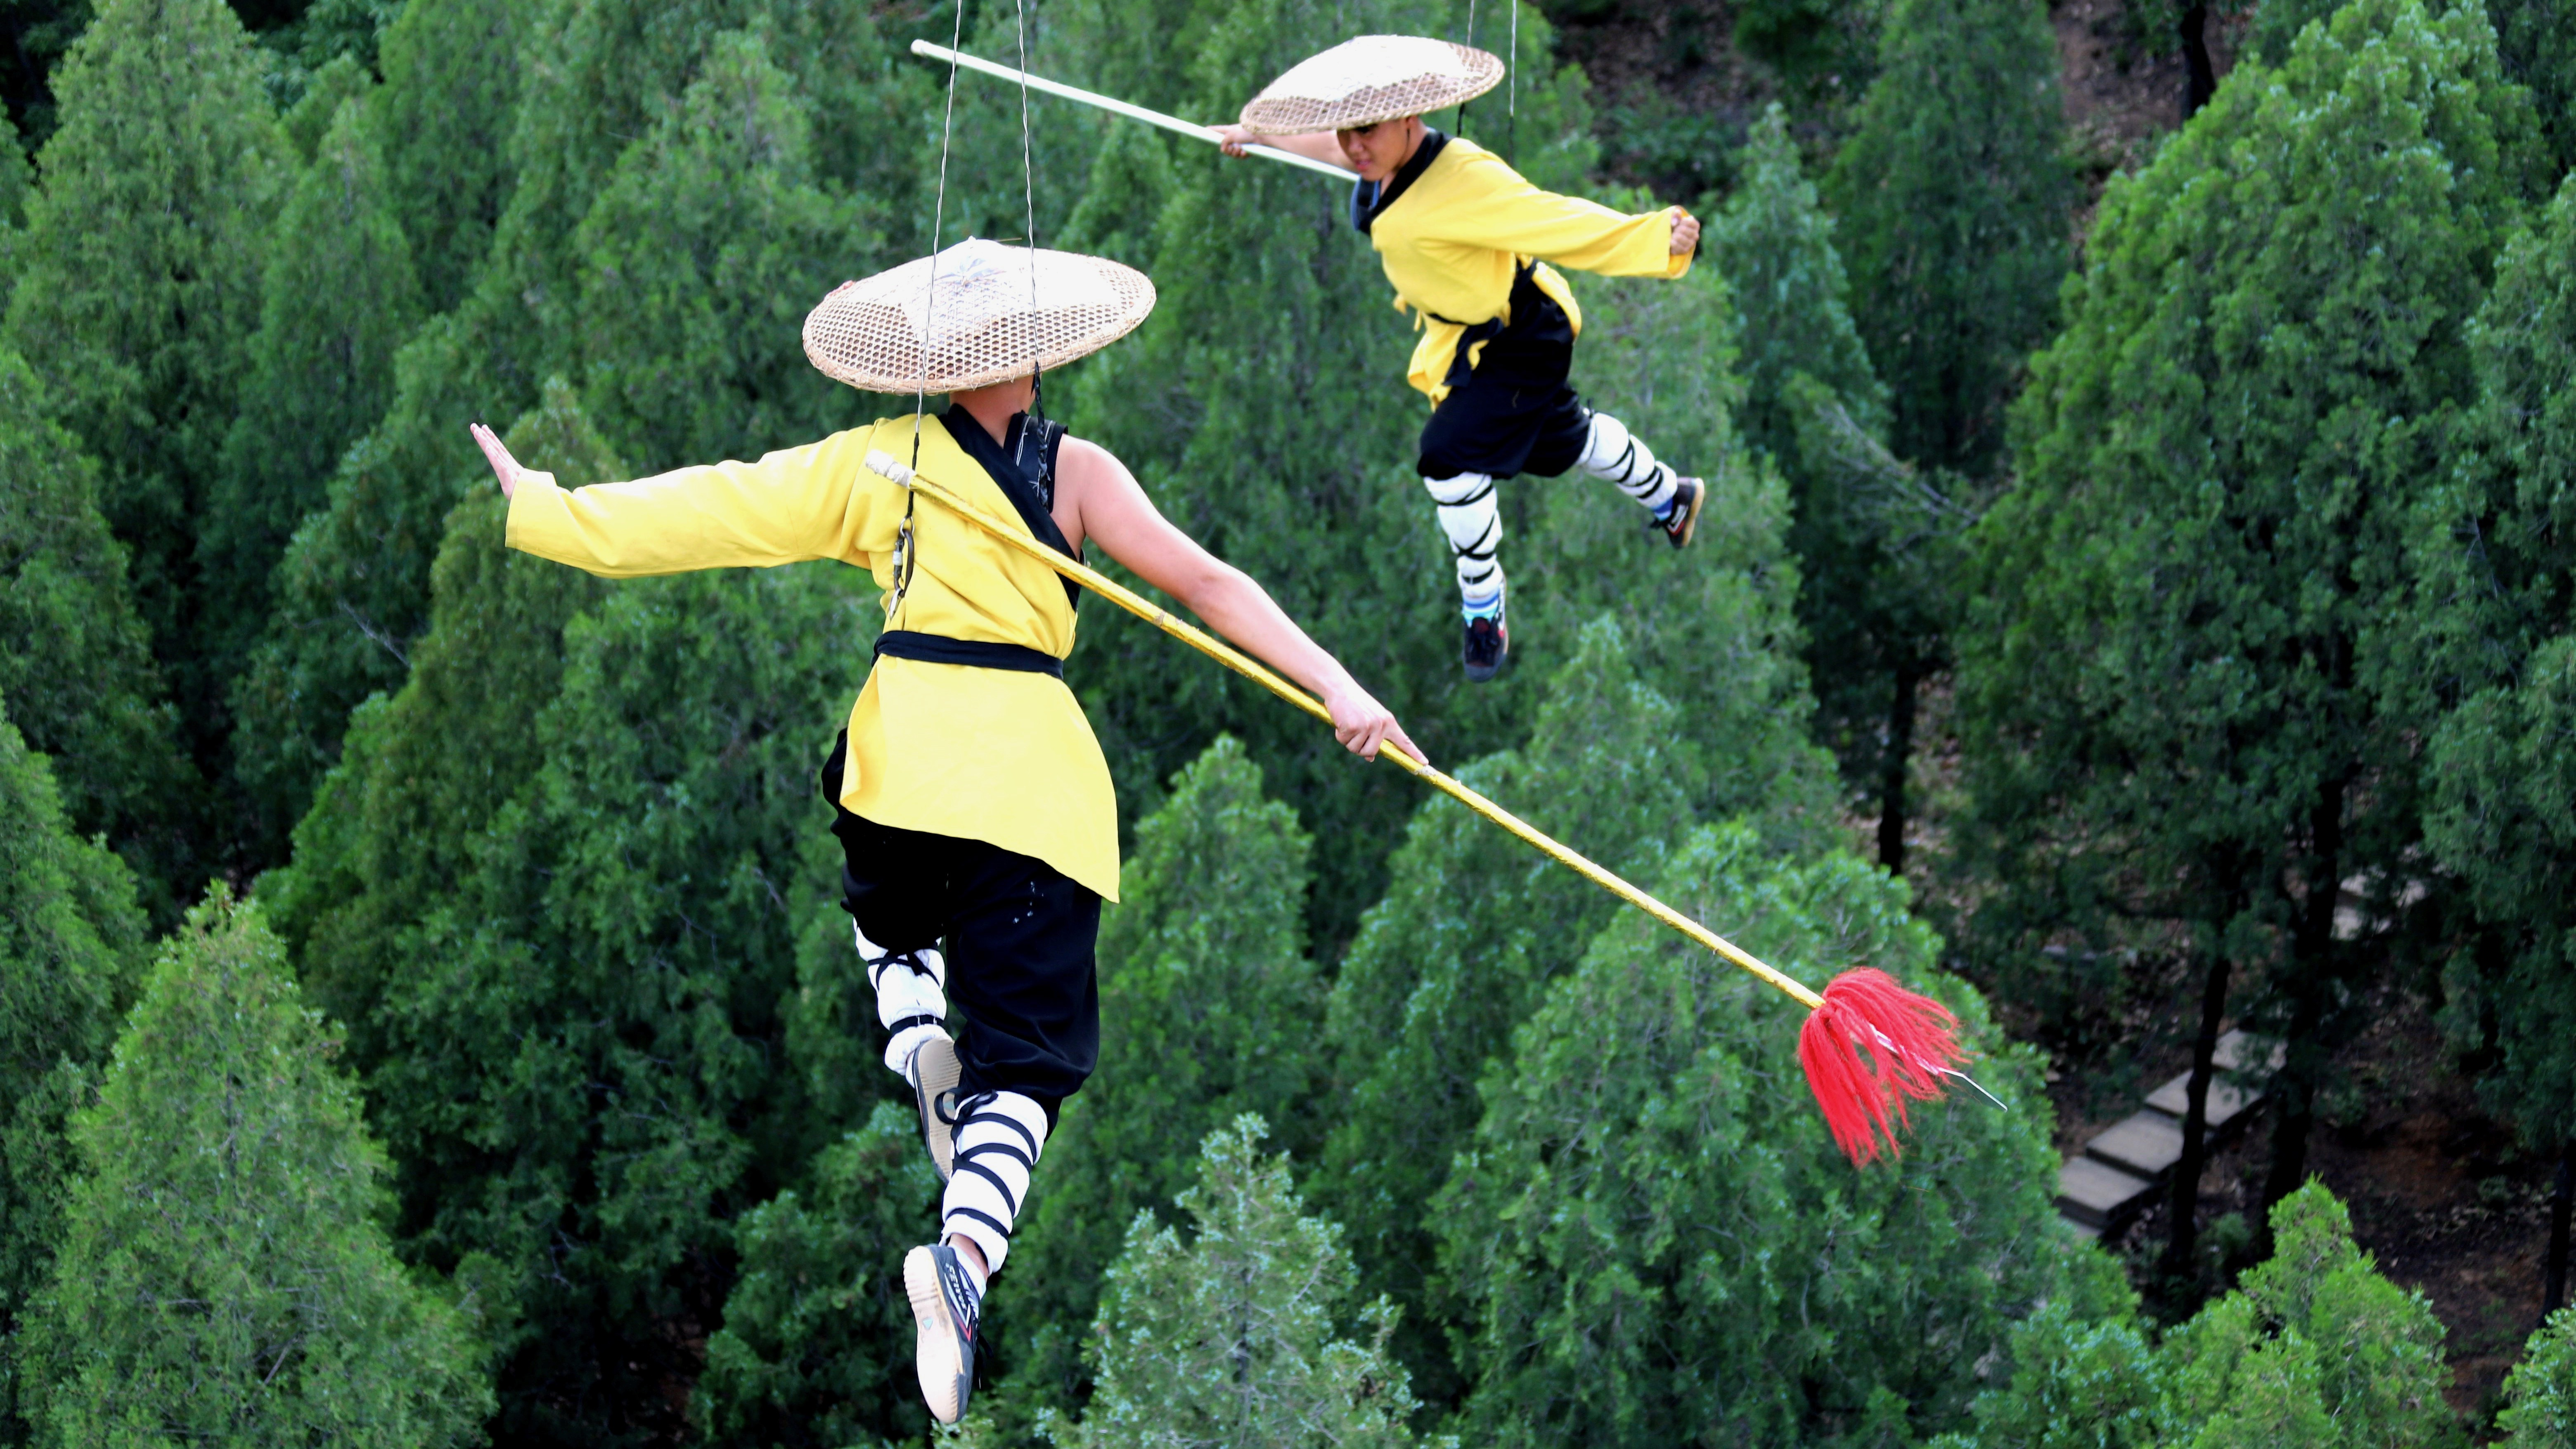 Kung fu practitioners in China.